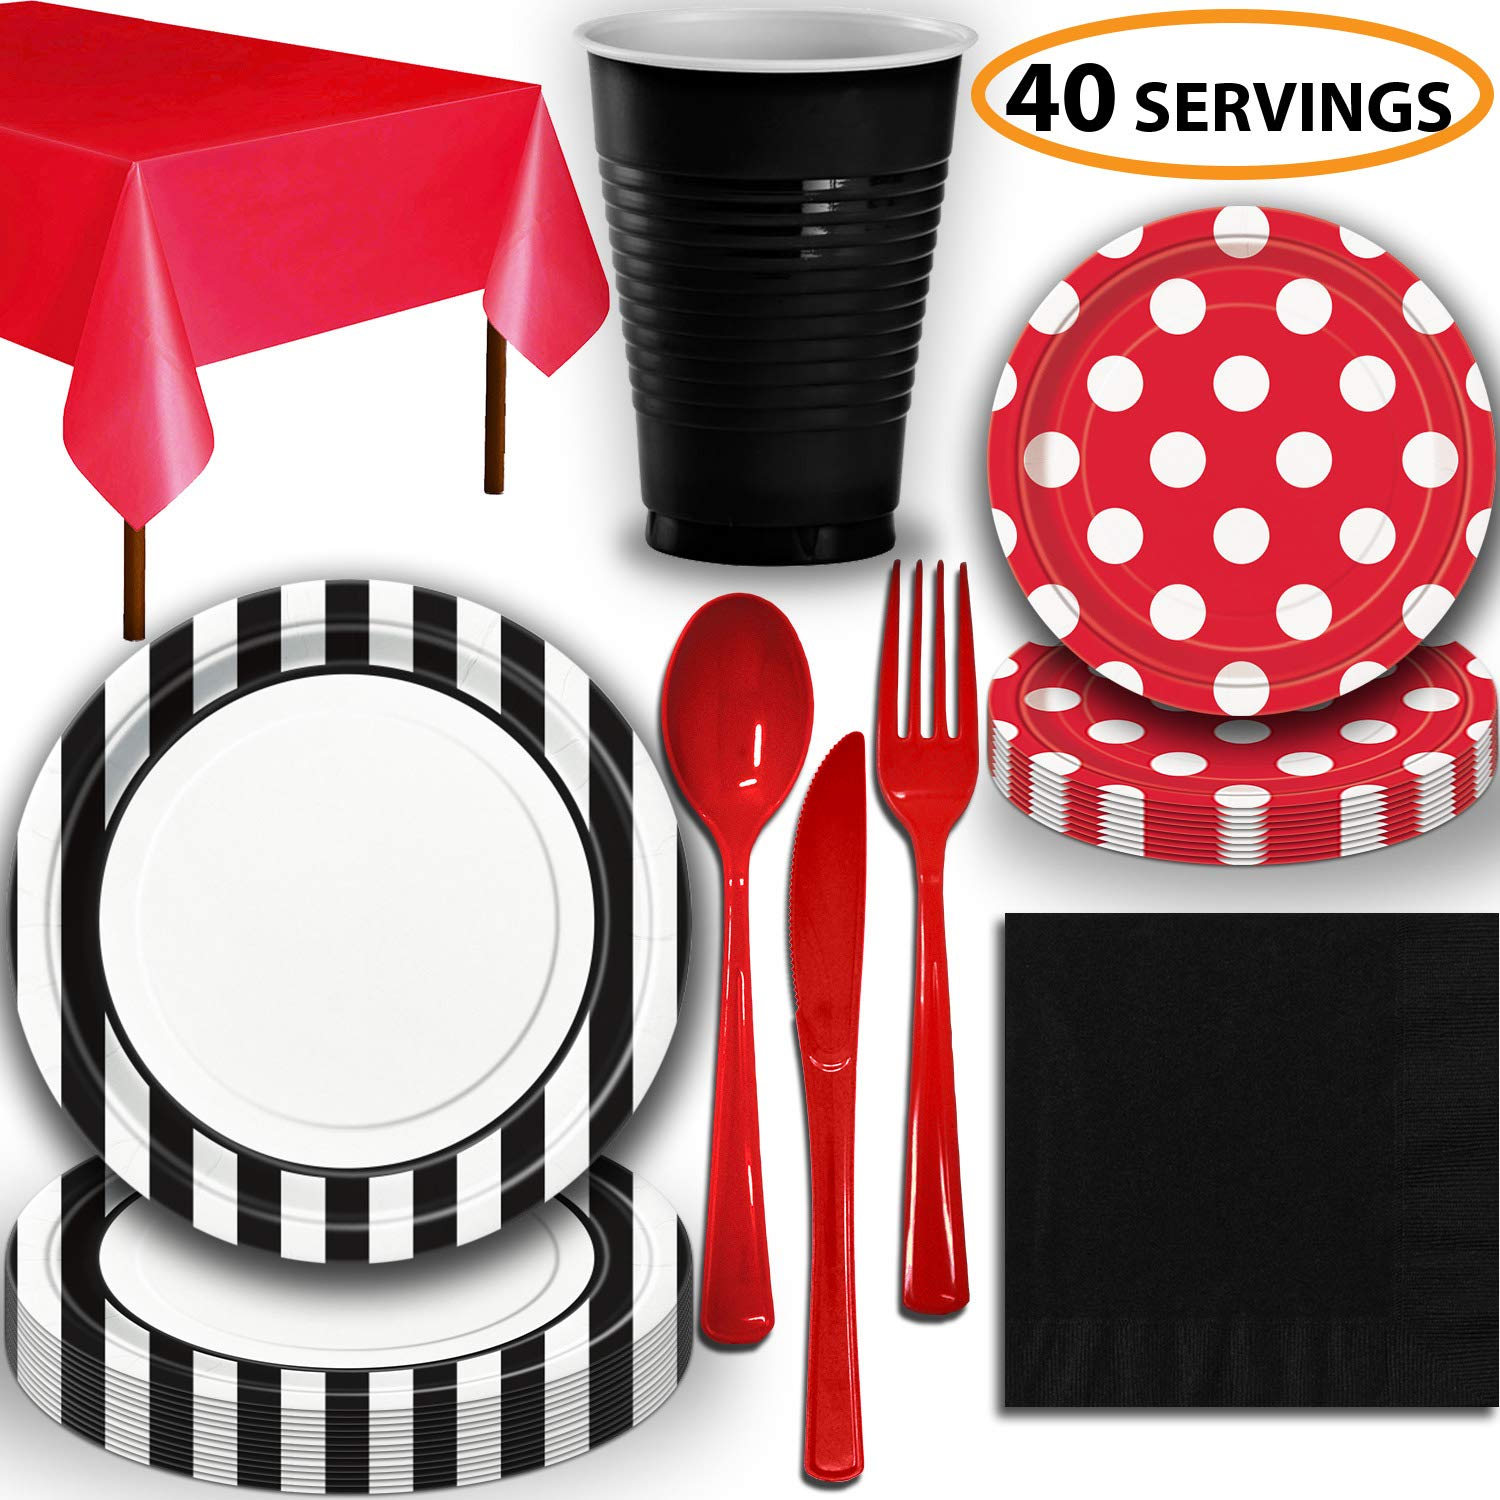 Disposable Tableware, 40 Sets - Midnight Black and Ruby Red - Striped Dinner Plates, Dotted Dessert Plates, Cups, Lunch Napkins, Cutlery, and Tablecloths: Premium Quality Party Supplies Set by HeroFiber (Image #1)